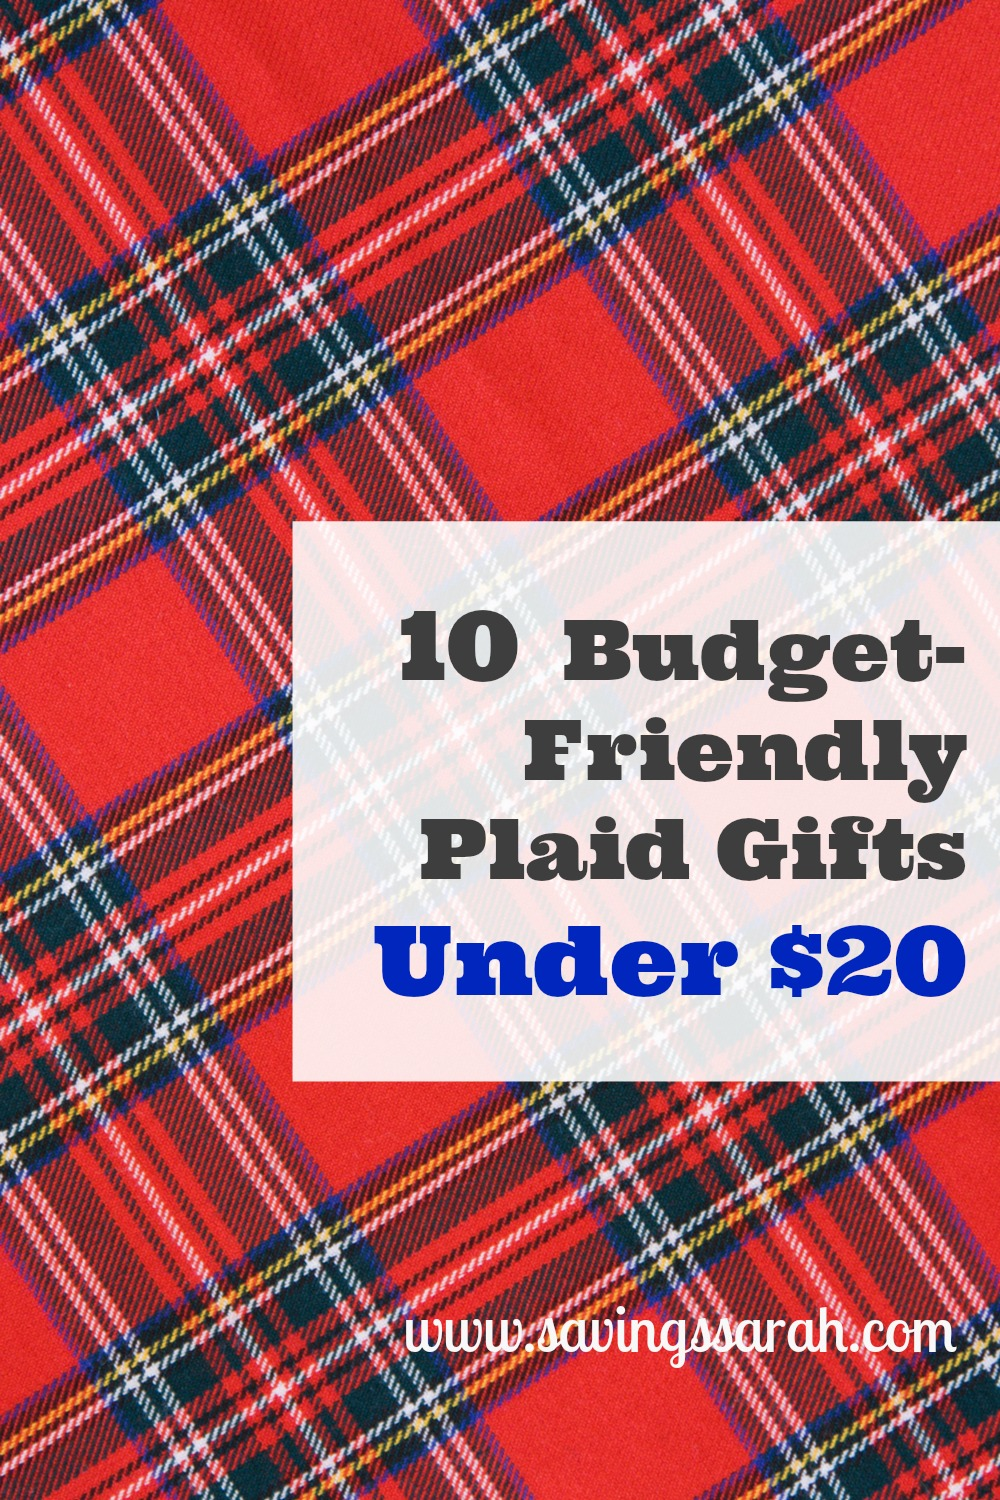 10 Budget-Friendly Plaid Gifts Under $20